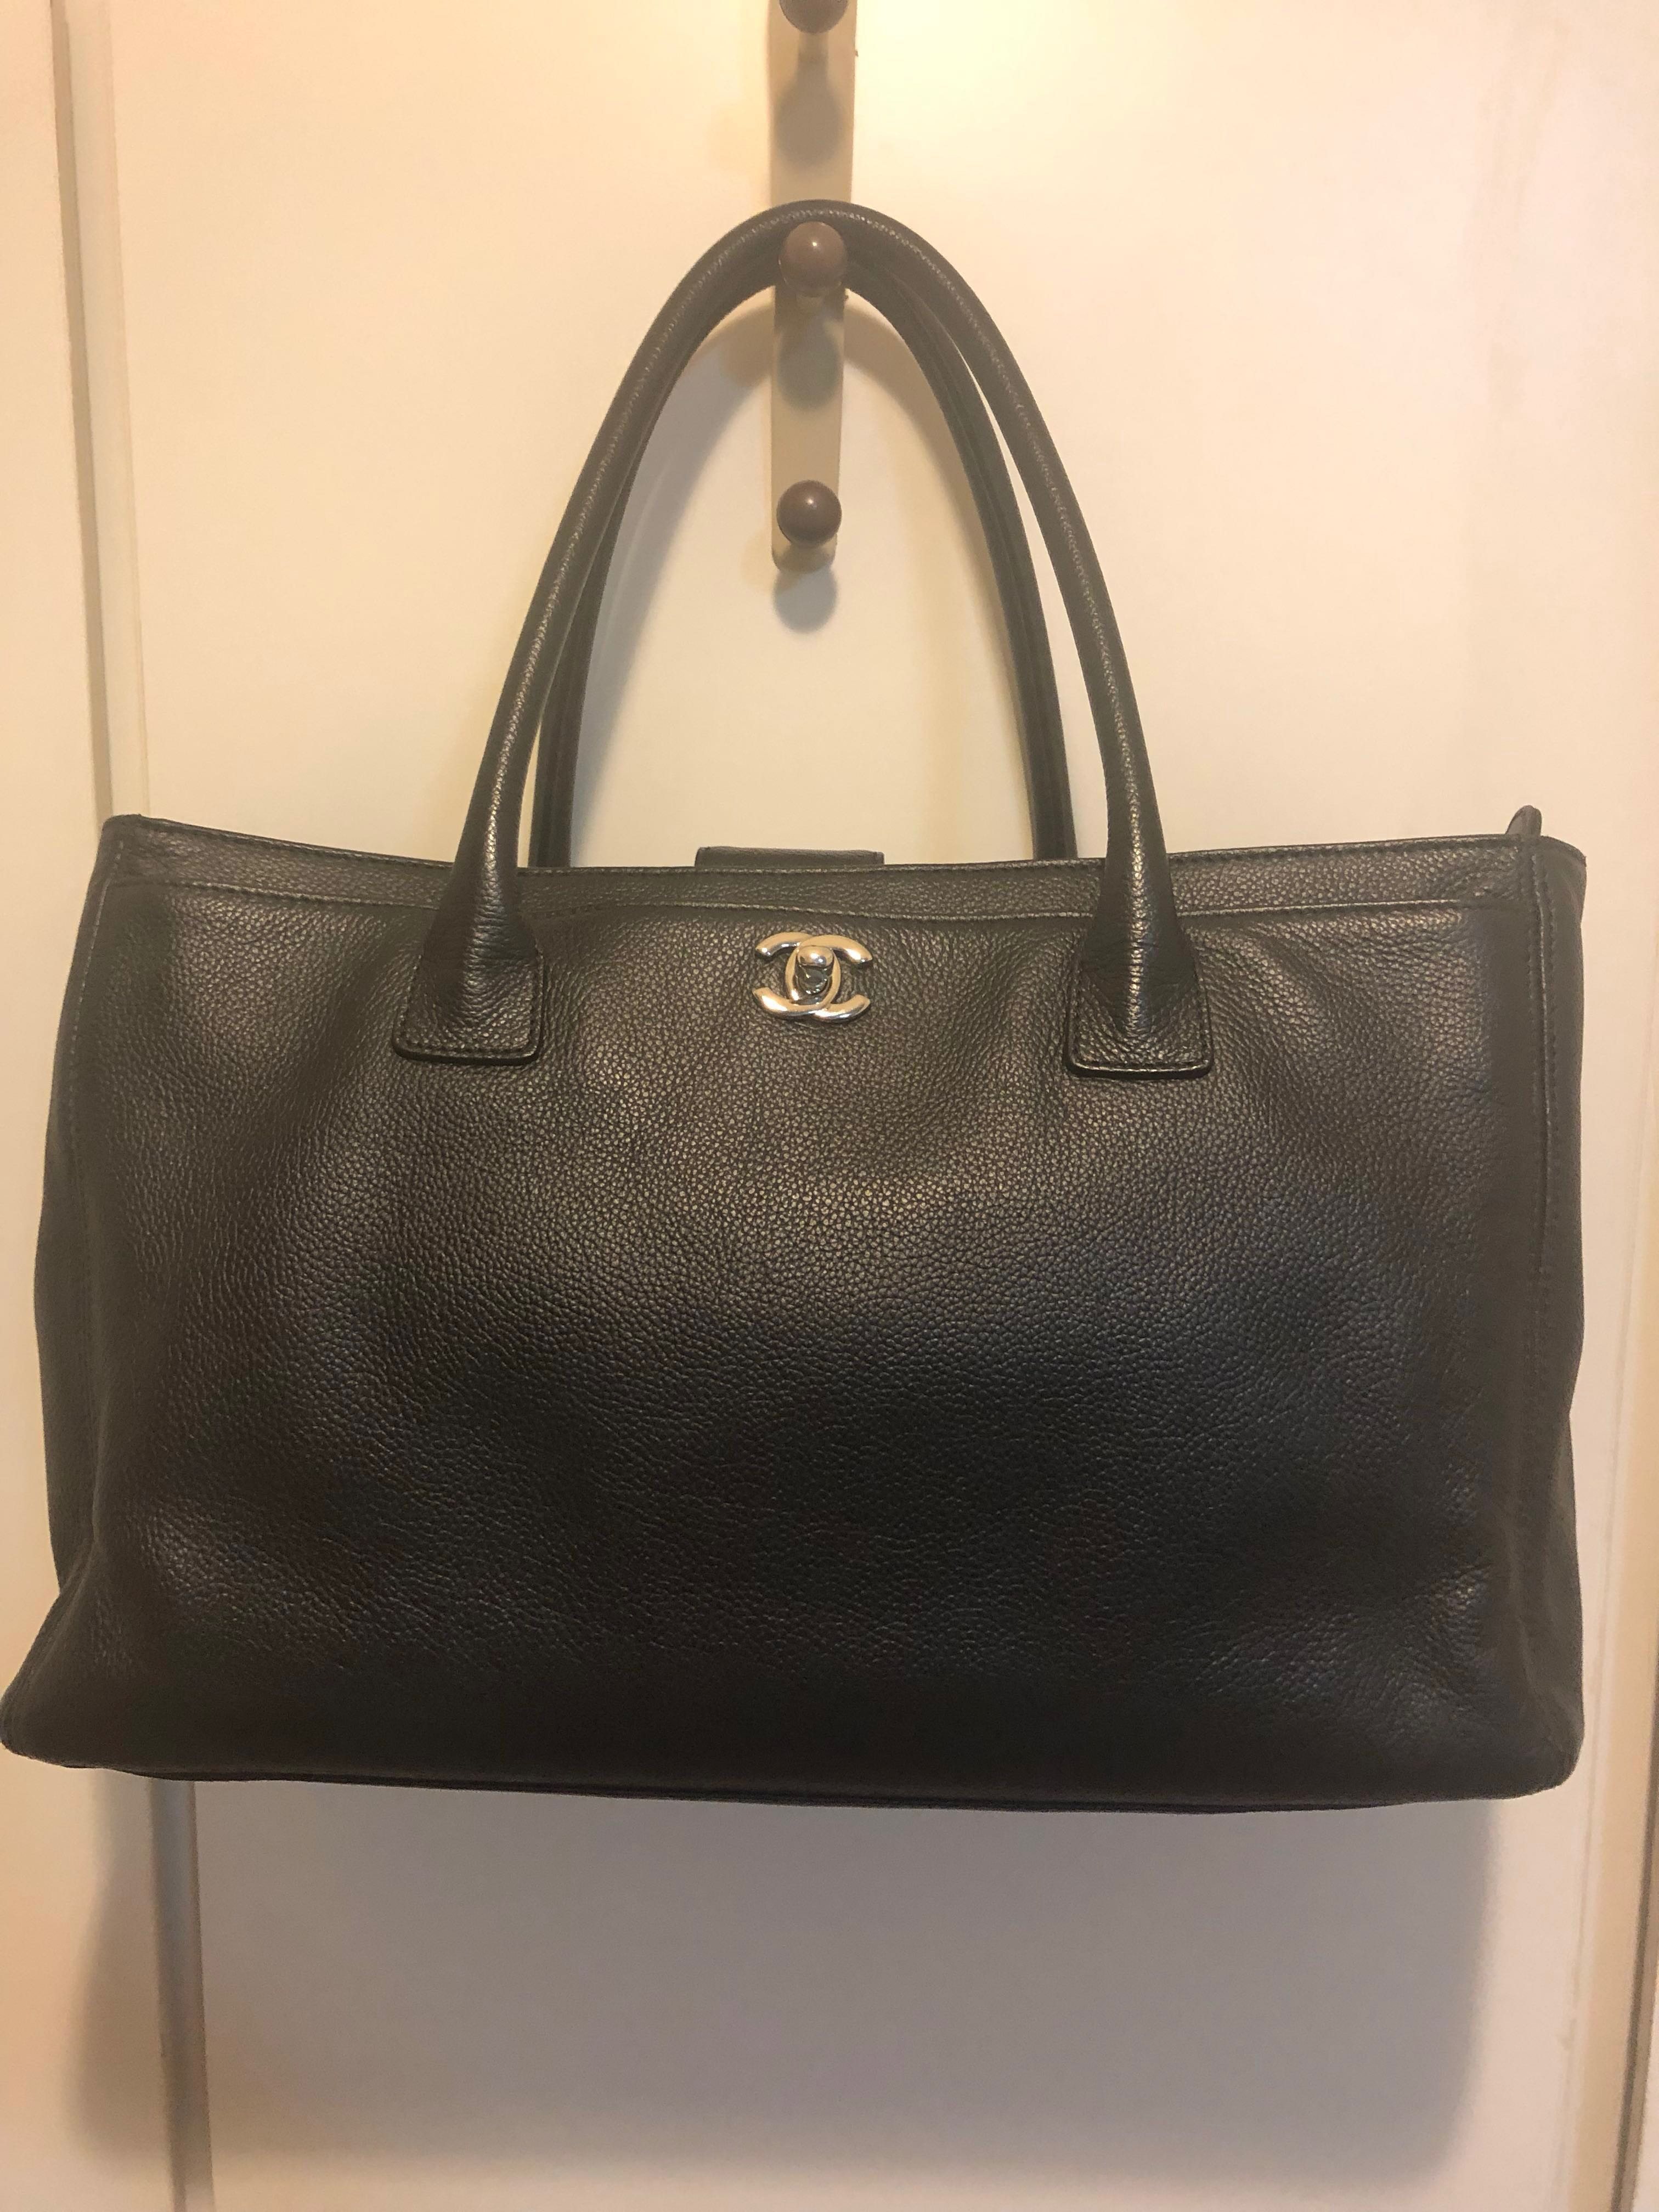 89bc4aec28cd7d Chanel Executive Cerf Tote, Luxury, Bags & Wallets, Handbags on Carousell